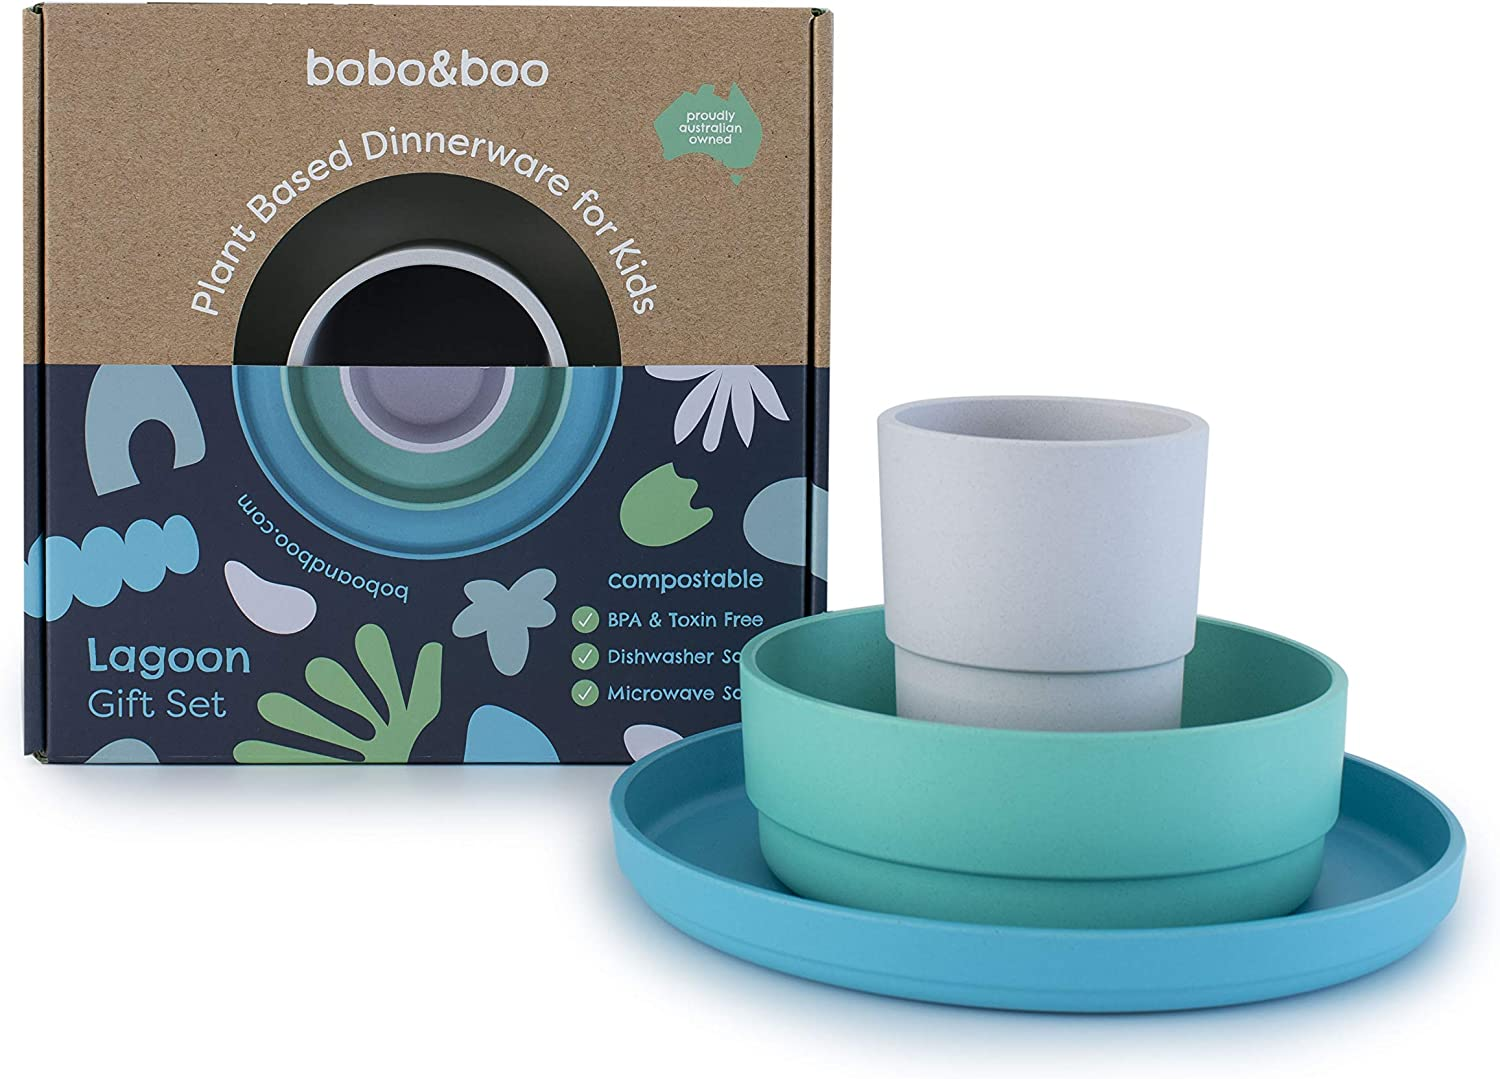 BOBO&BOO Plant-Based Dinnerware Set for Children, 3 Pieces - Eco-Friendly Kids Dishes, Microwave and Dishwasher Safe - Biodegradable Cups, Plates, and Bowls - Plant-Based Dishware - LAGOON